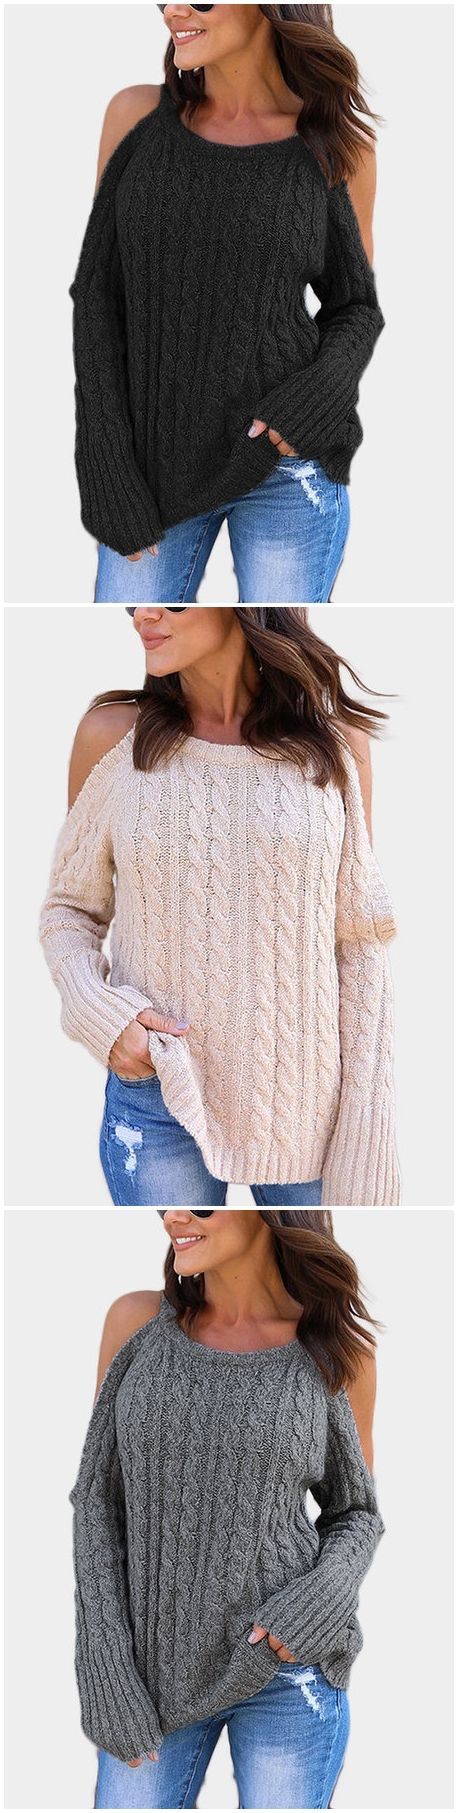 Cable Knit Cold Shoulder Long Sleeves Jumper I like this but could not wear to work.